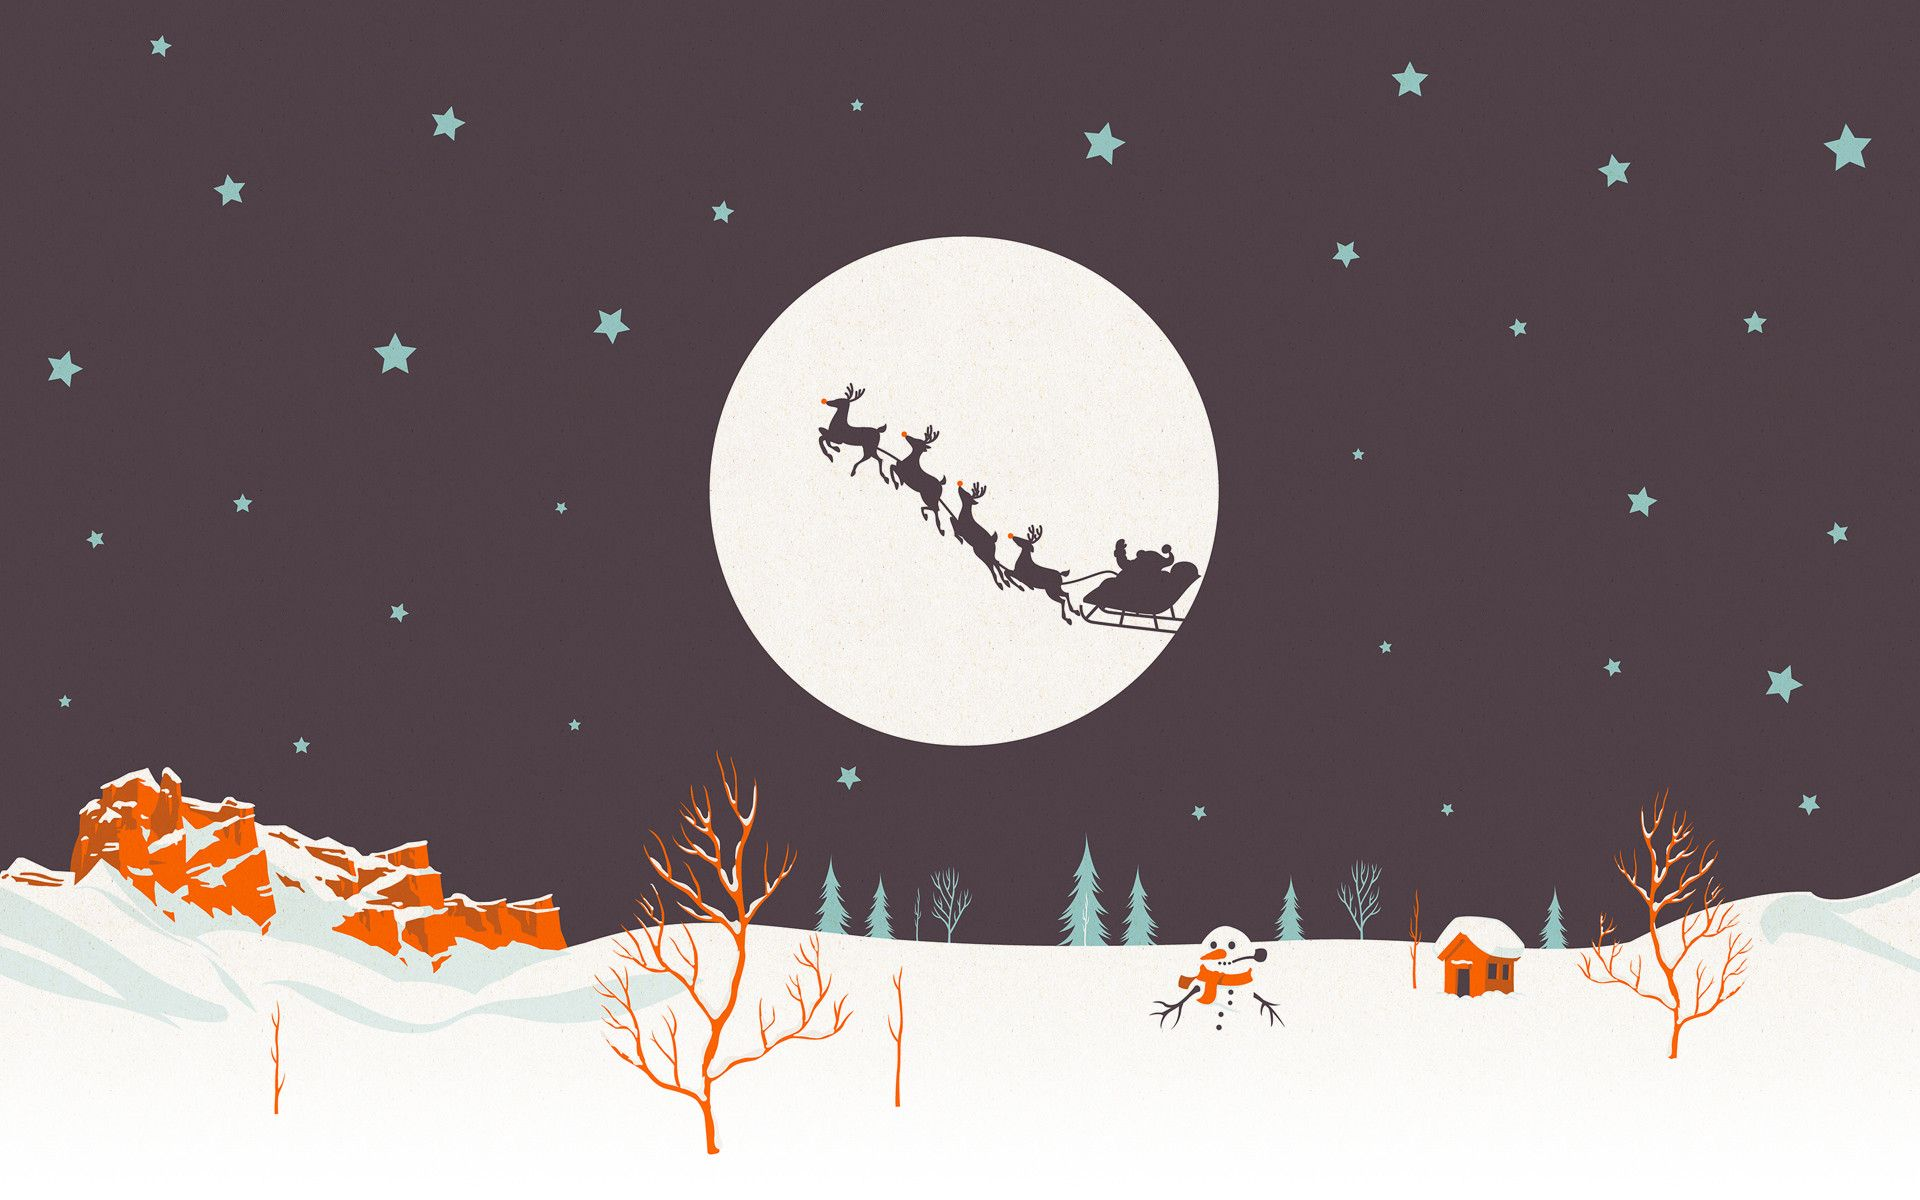 christmas aesthetic tumblr computer wallpapers top free christmas aesthetic tumblr computer backgrounds wallpaperaccess christmas aesthetic tumblr computer